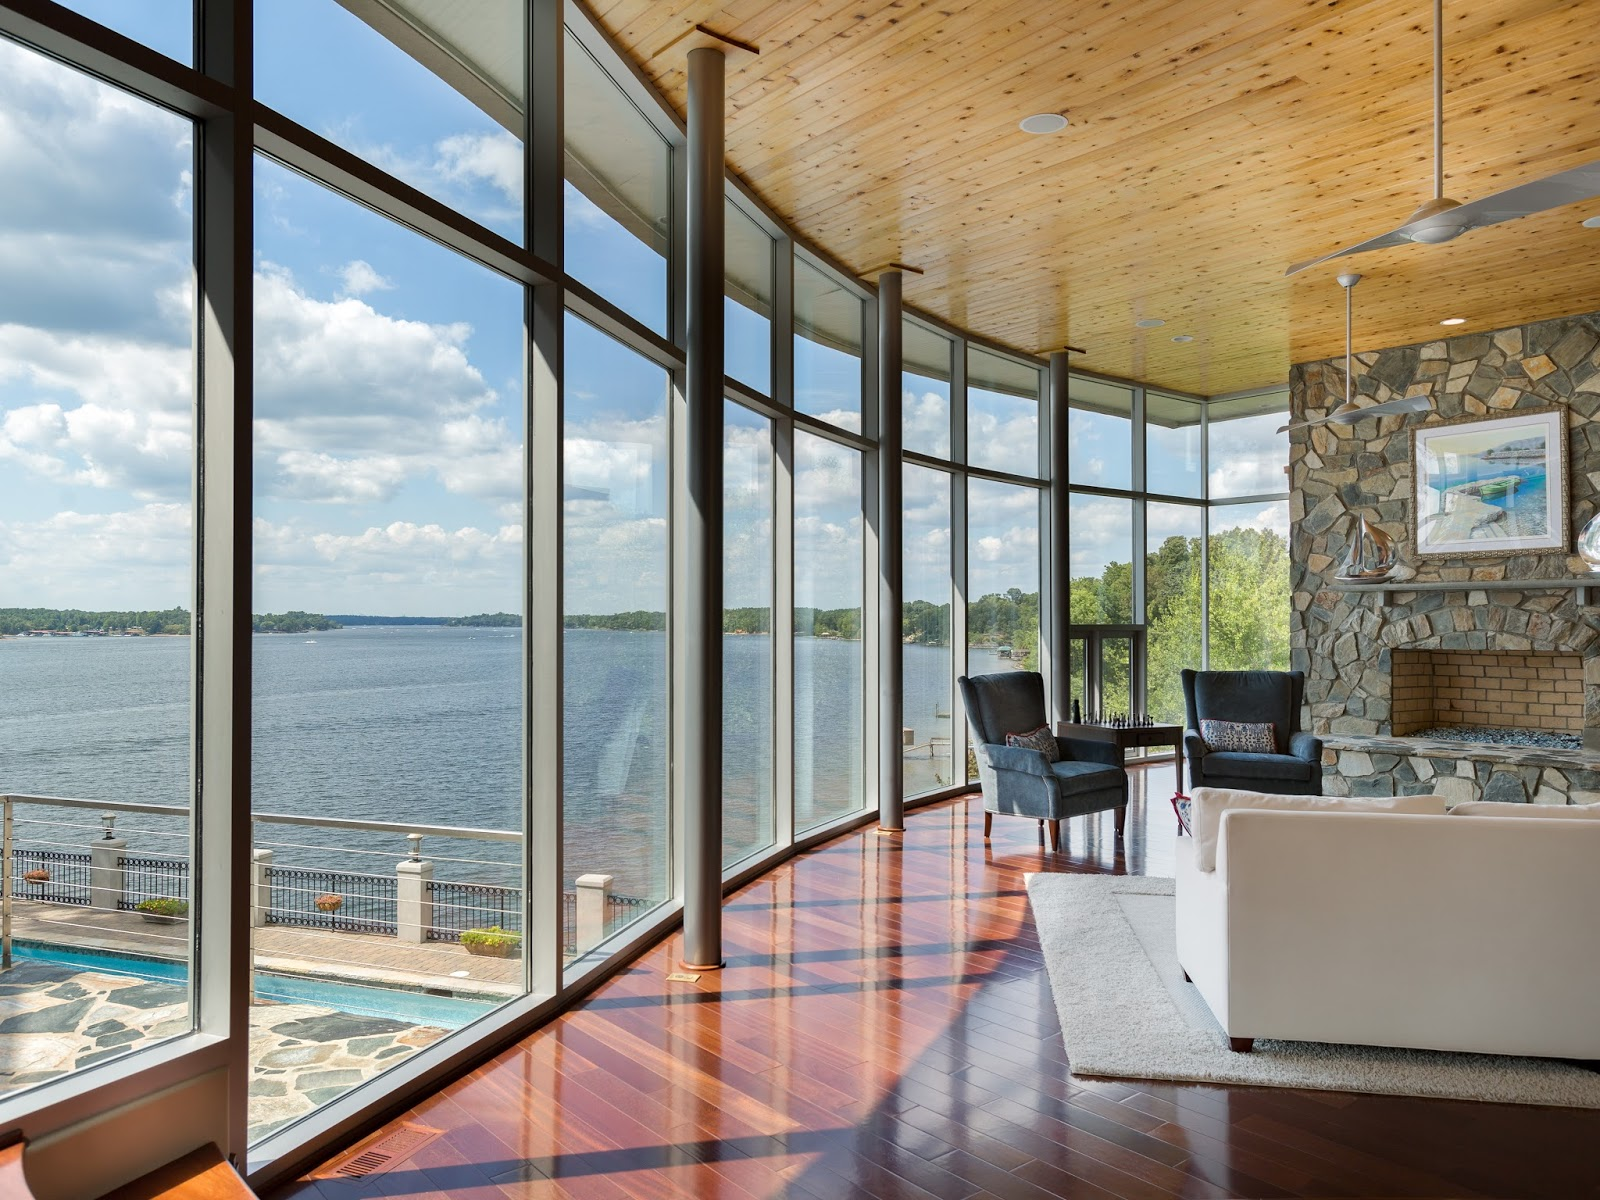 Charlotte Modern: Dive In .... Modern Living on Lake Wylie